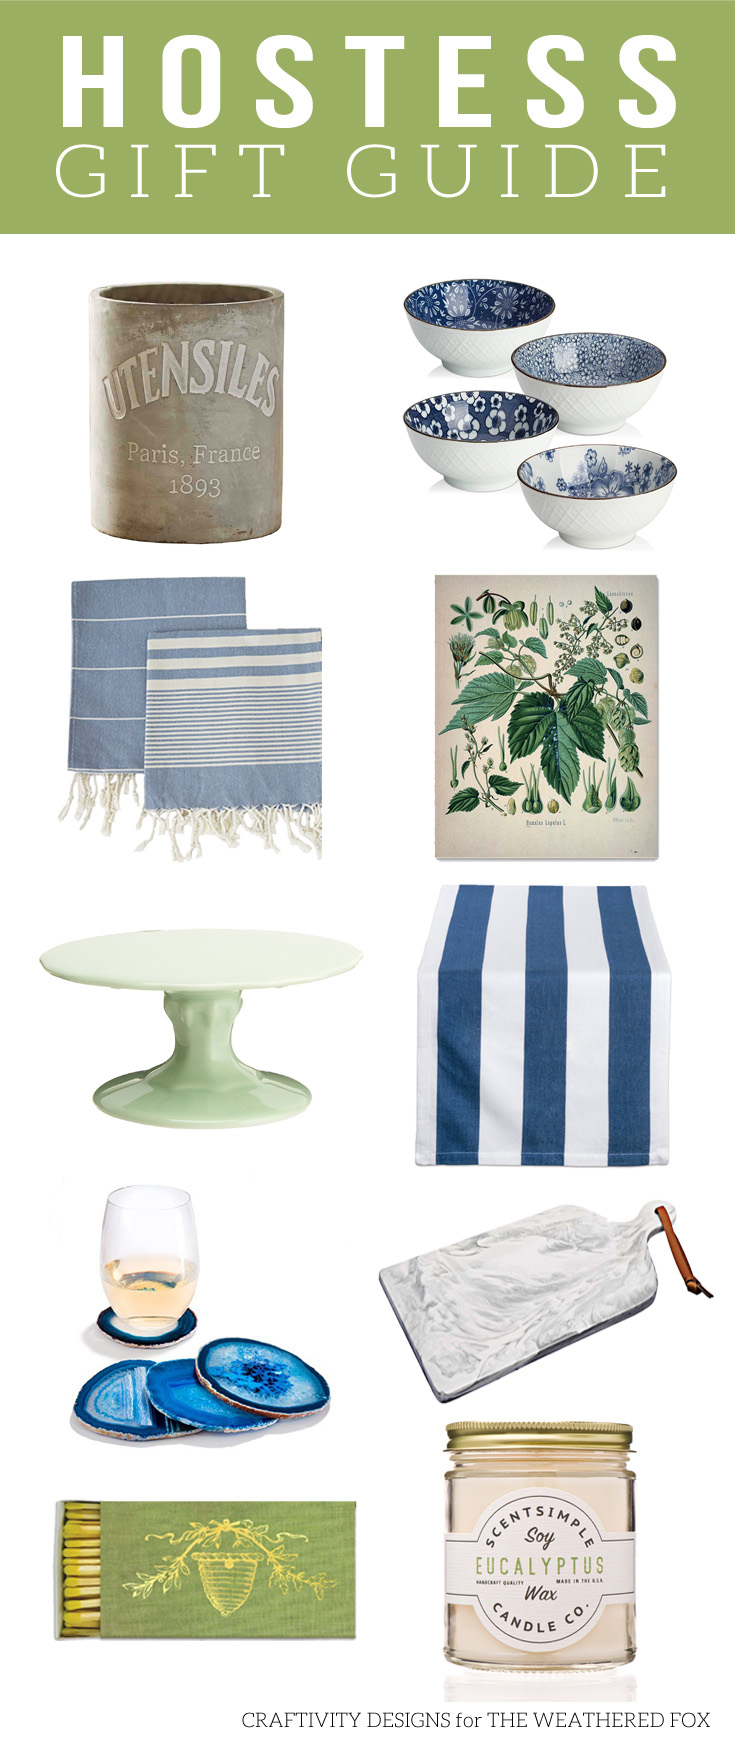 Hostess Gift Guide. Blue and Green. Farmhouse, Eclectic. Kitchenware, Servingware.